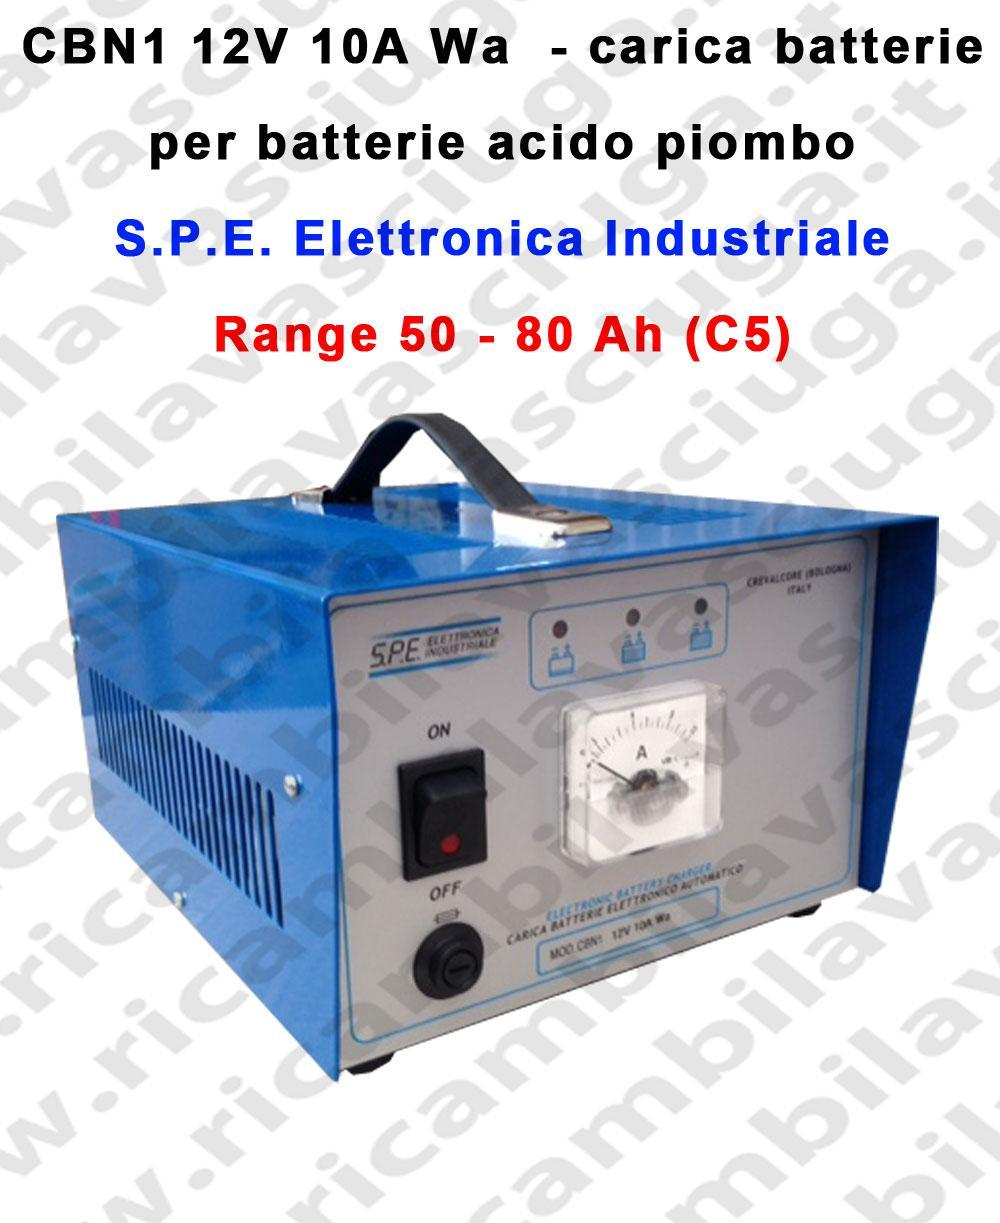 CBN1 12V 10A Wa Battery Charger for acid plombe battery S.P.E. Elettronica Industriale